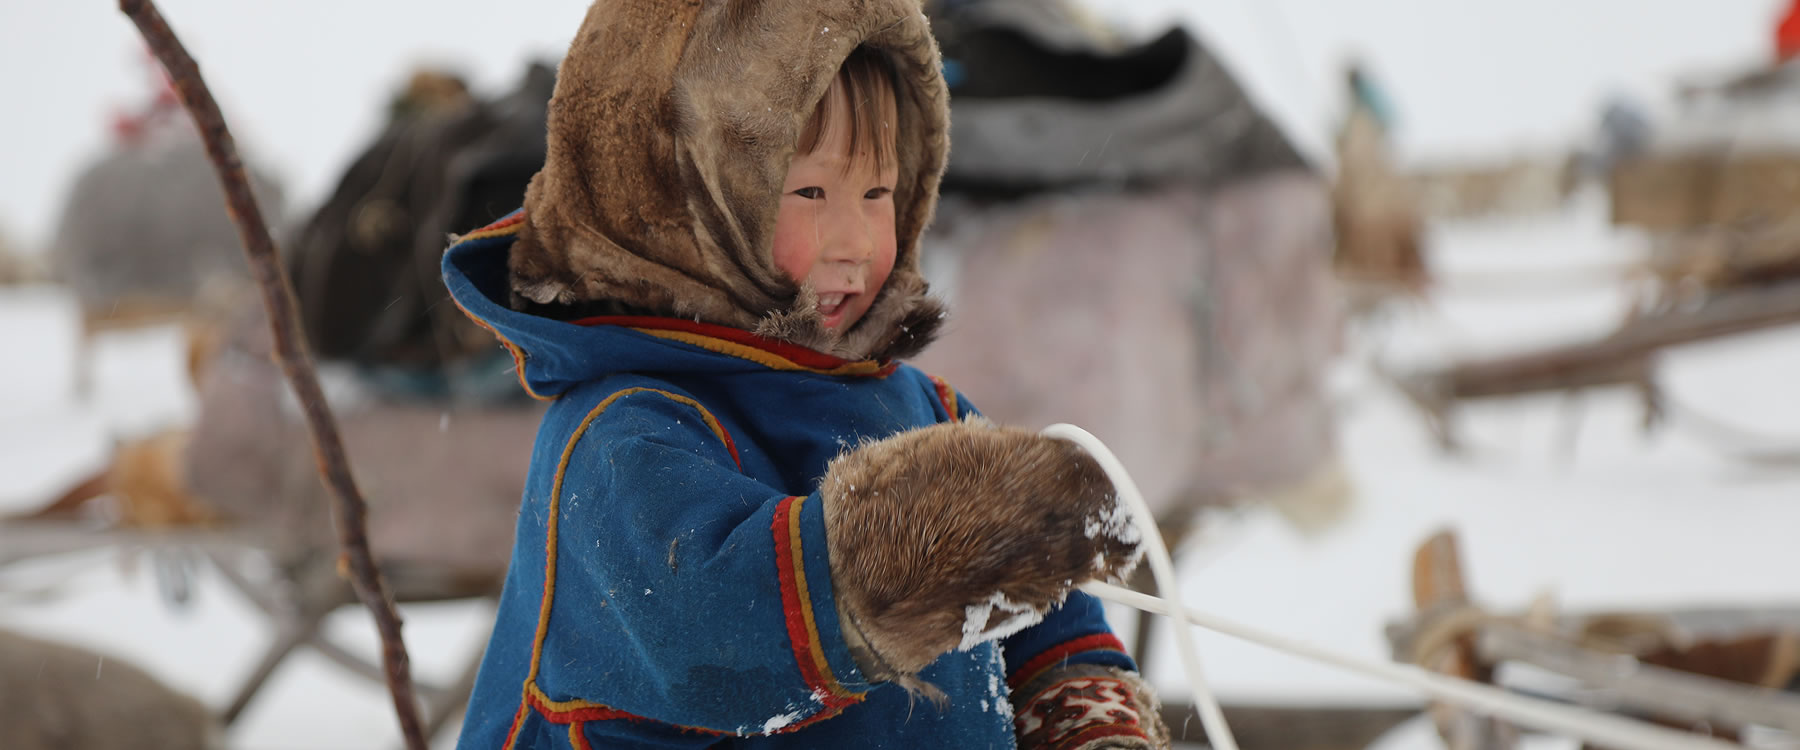 young child bundled up in warm clothing in snow